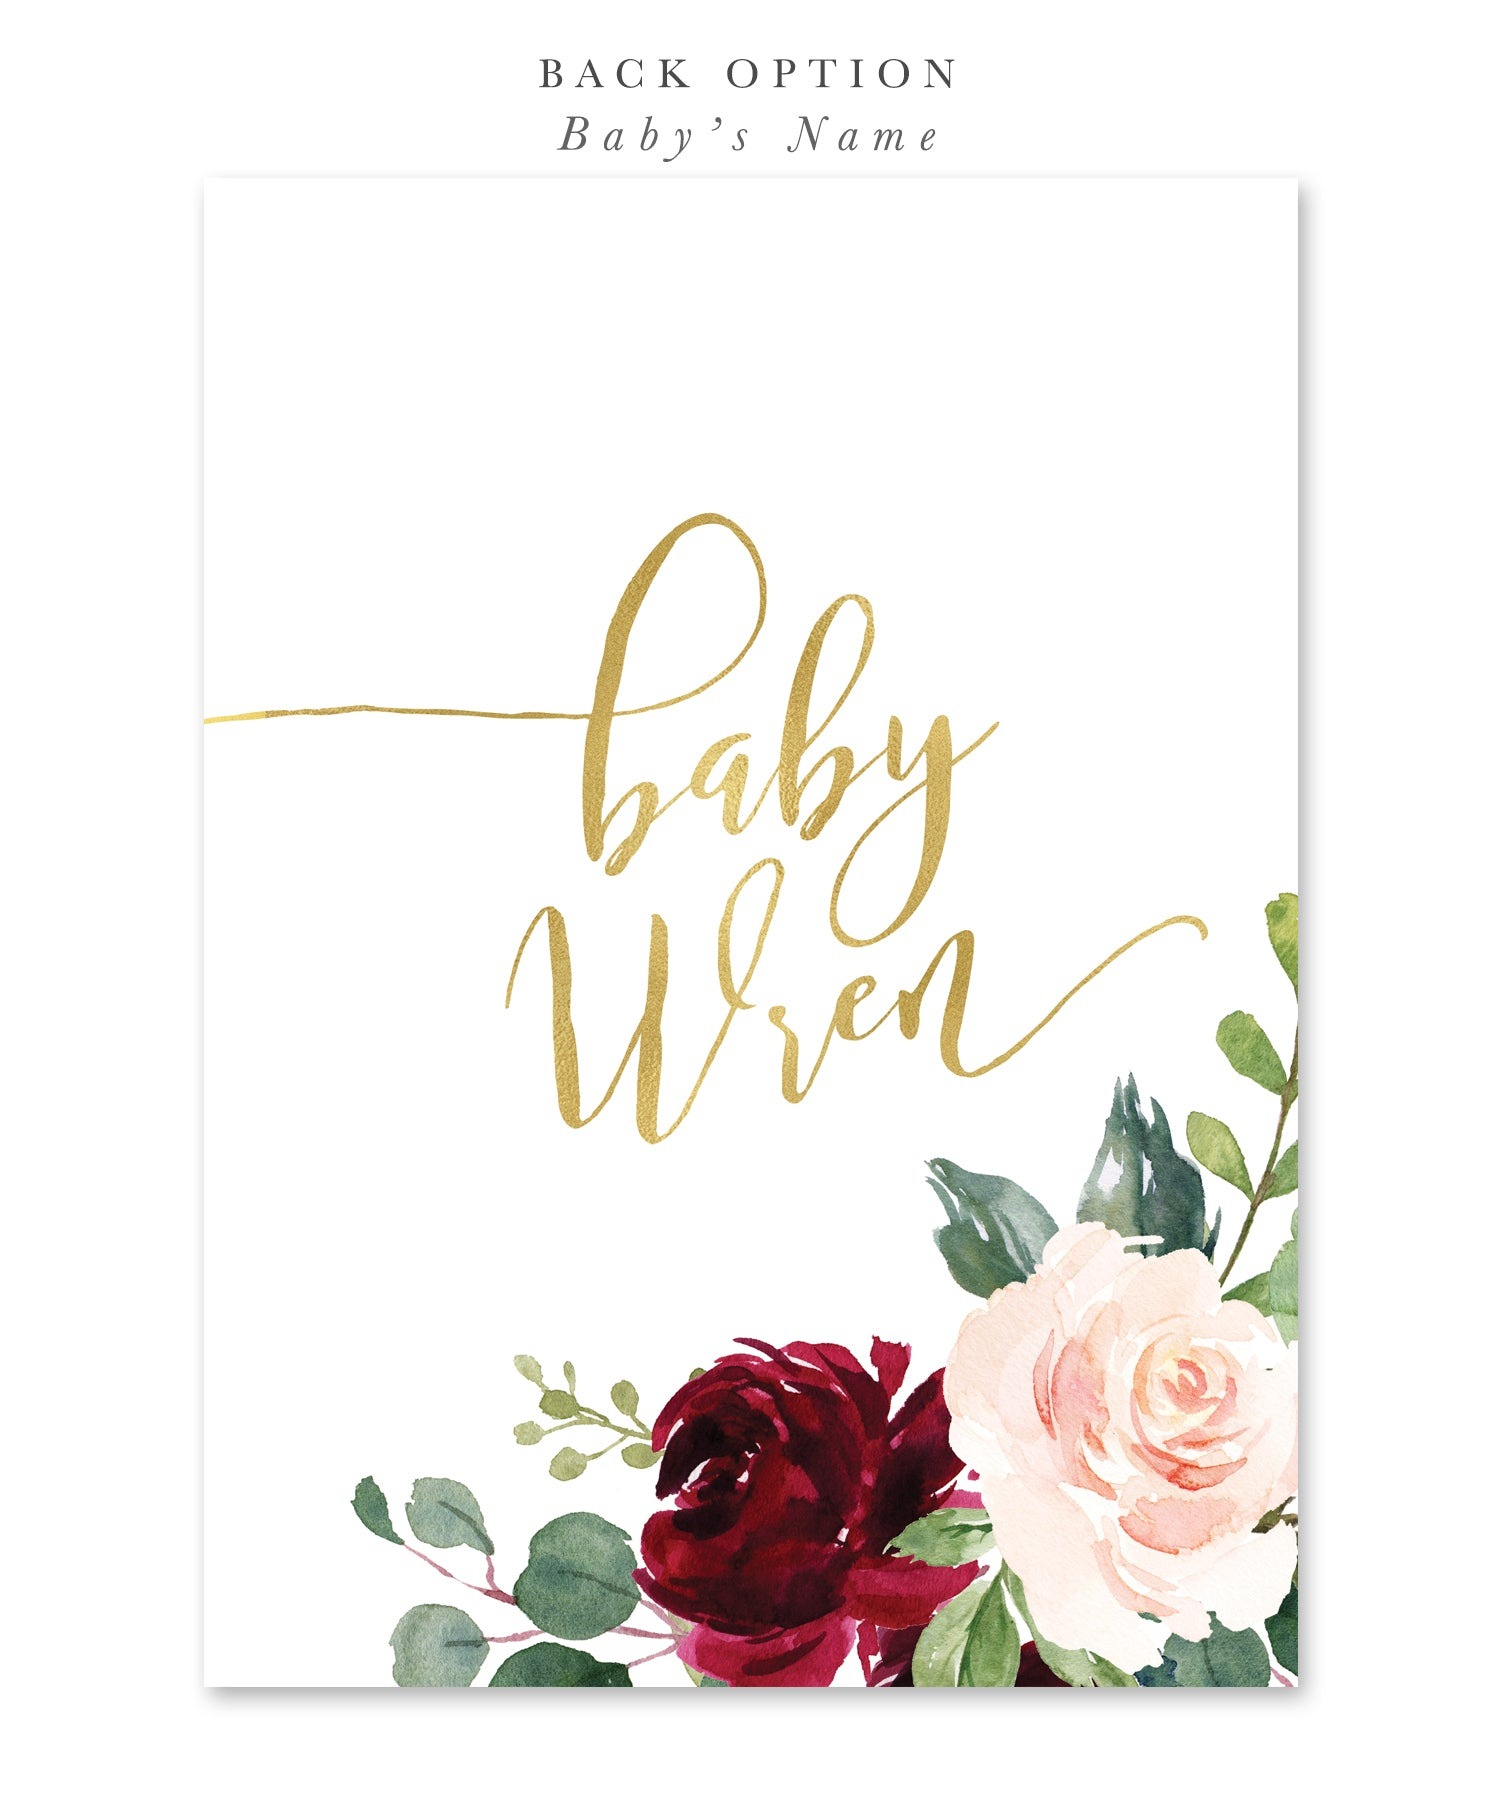 Baby shower invitation girl girl baby shower invite burgundy baby shower invitation girl girl baby shower invite burgundy blush baby shower invite floral baby shower printed printable kristen filmwisefo